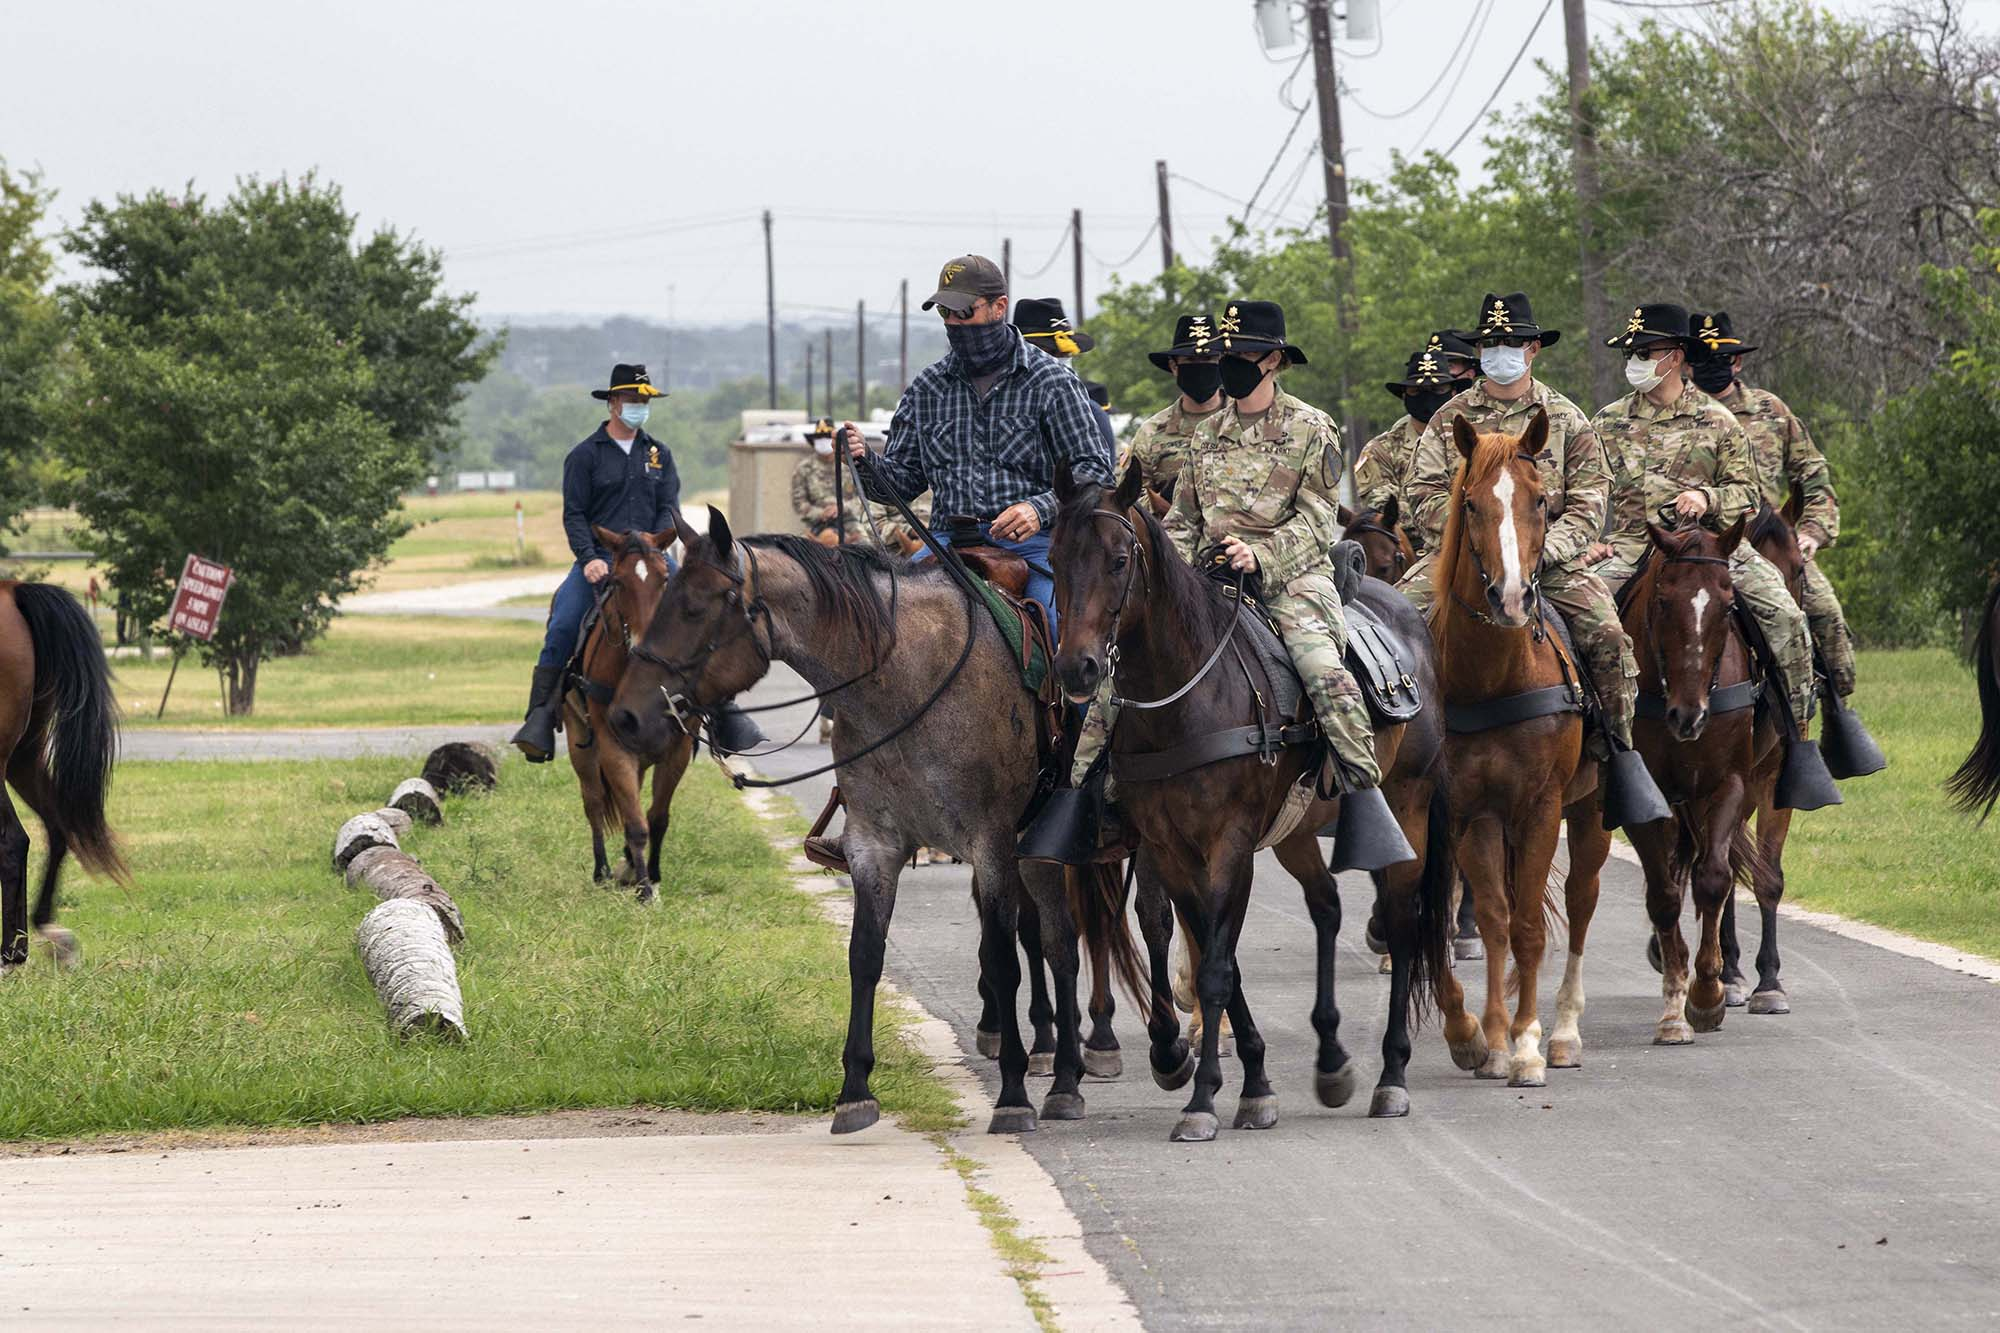 Senior leaders and command teams from 1st Cavalry Division Sustainment Brigade come together in First Team tradition for a trail ride led by the 1st Cavalry Division Horse Detachment, Fort Hood, Texas, July 1, 2020. (Sgt. Calab Franklin/Army)